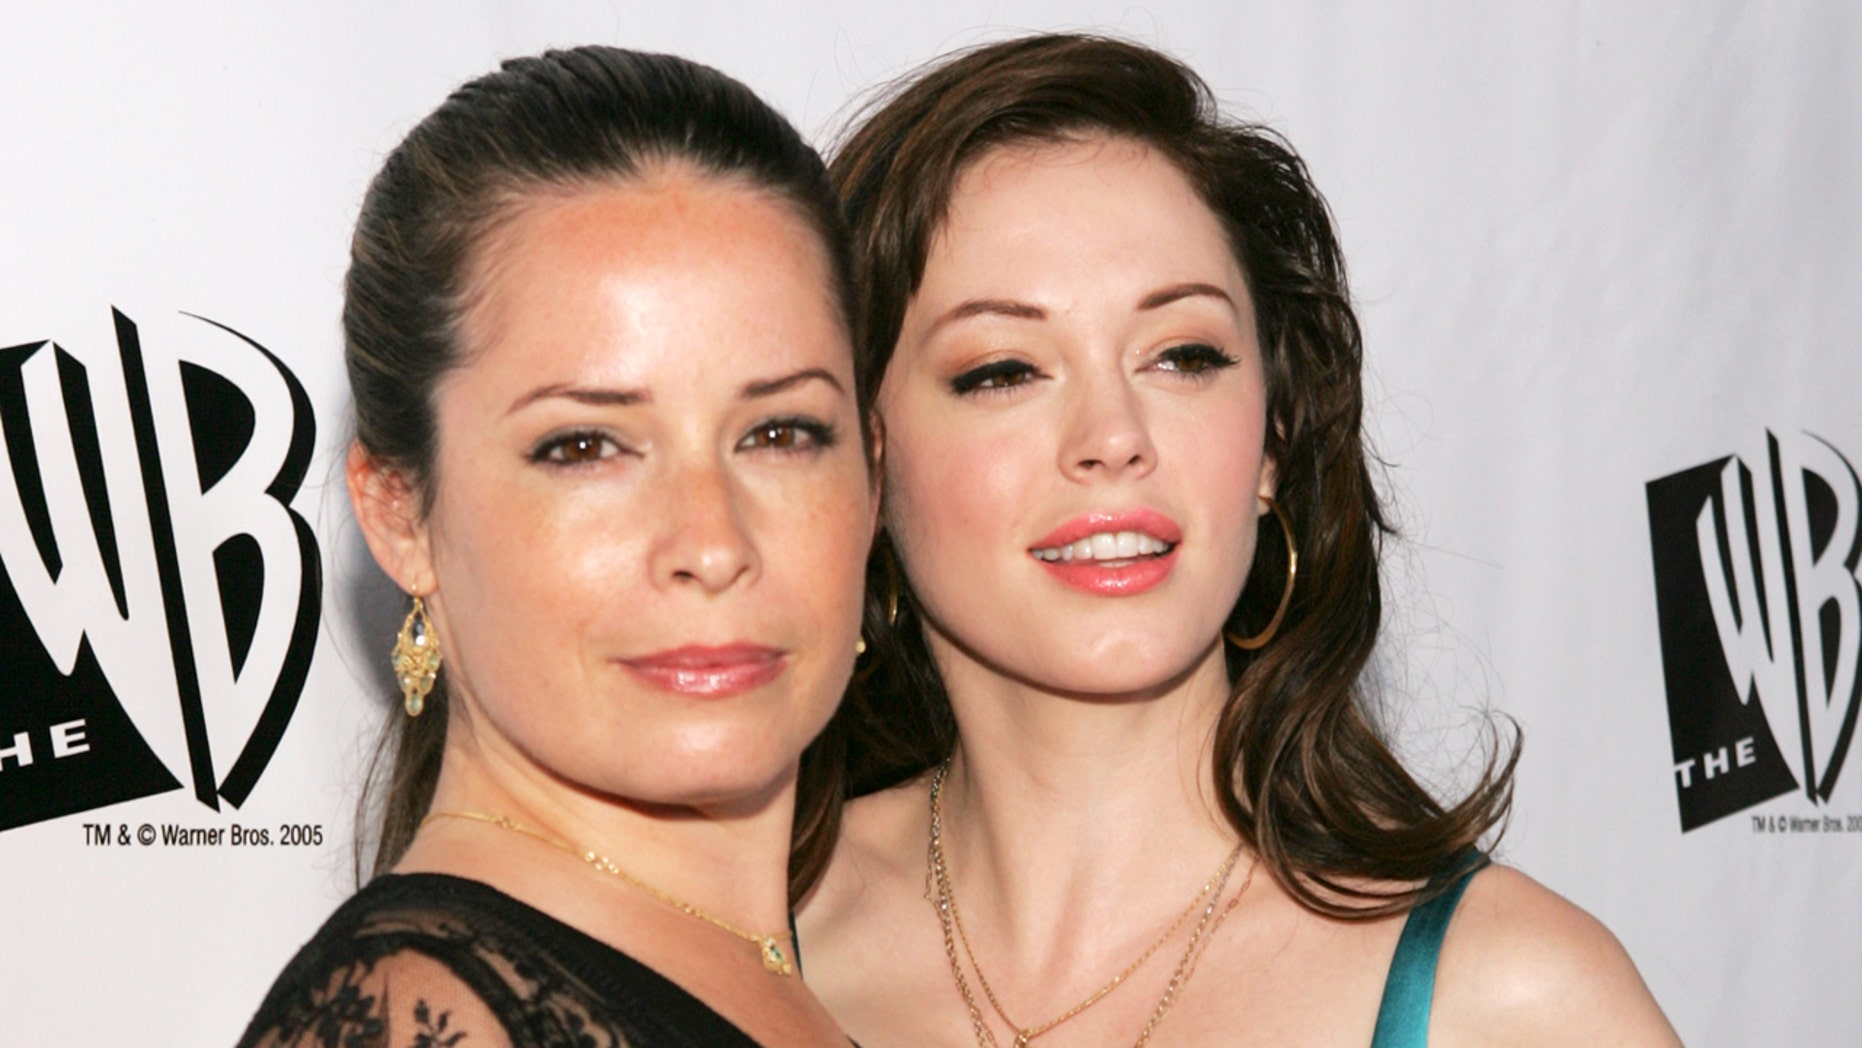 """Charmed"" cast member Holly Marie Combs criticizes new reboot. Here,  Combs (left) with co-star Rose McGowan, arrive for The WB's All-Star Party at the Cabana Club in Hollywood July 22, 2005."